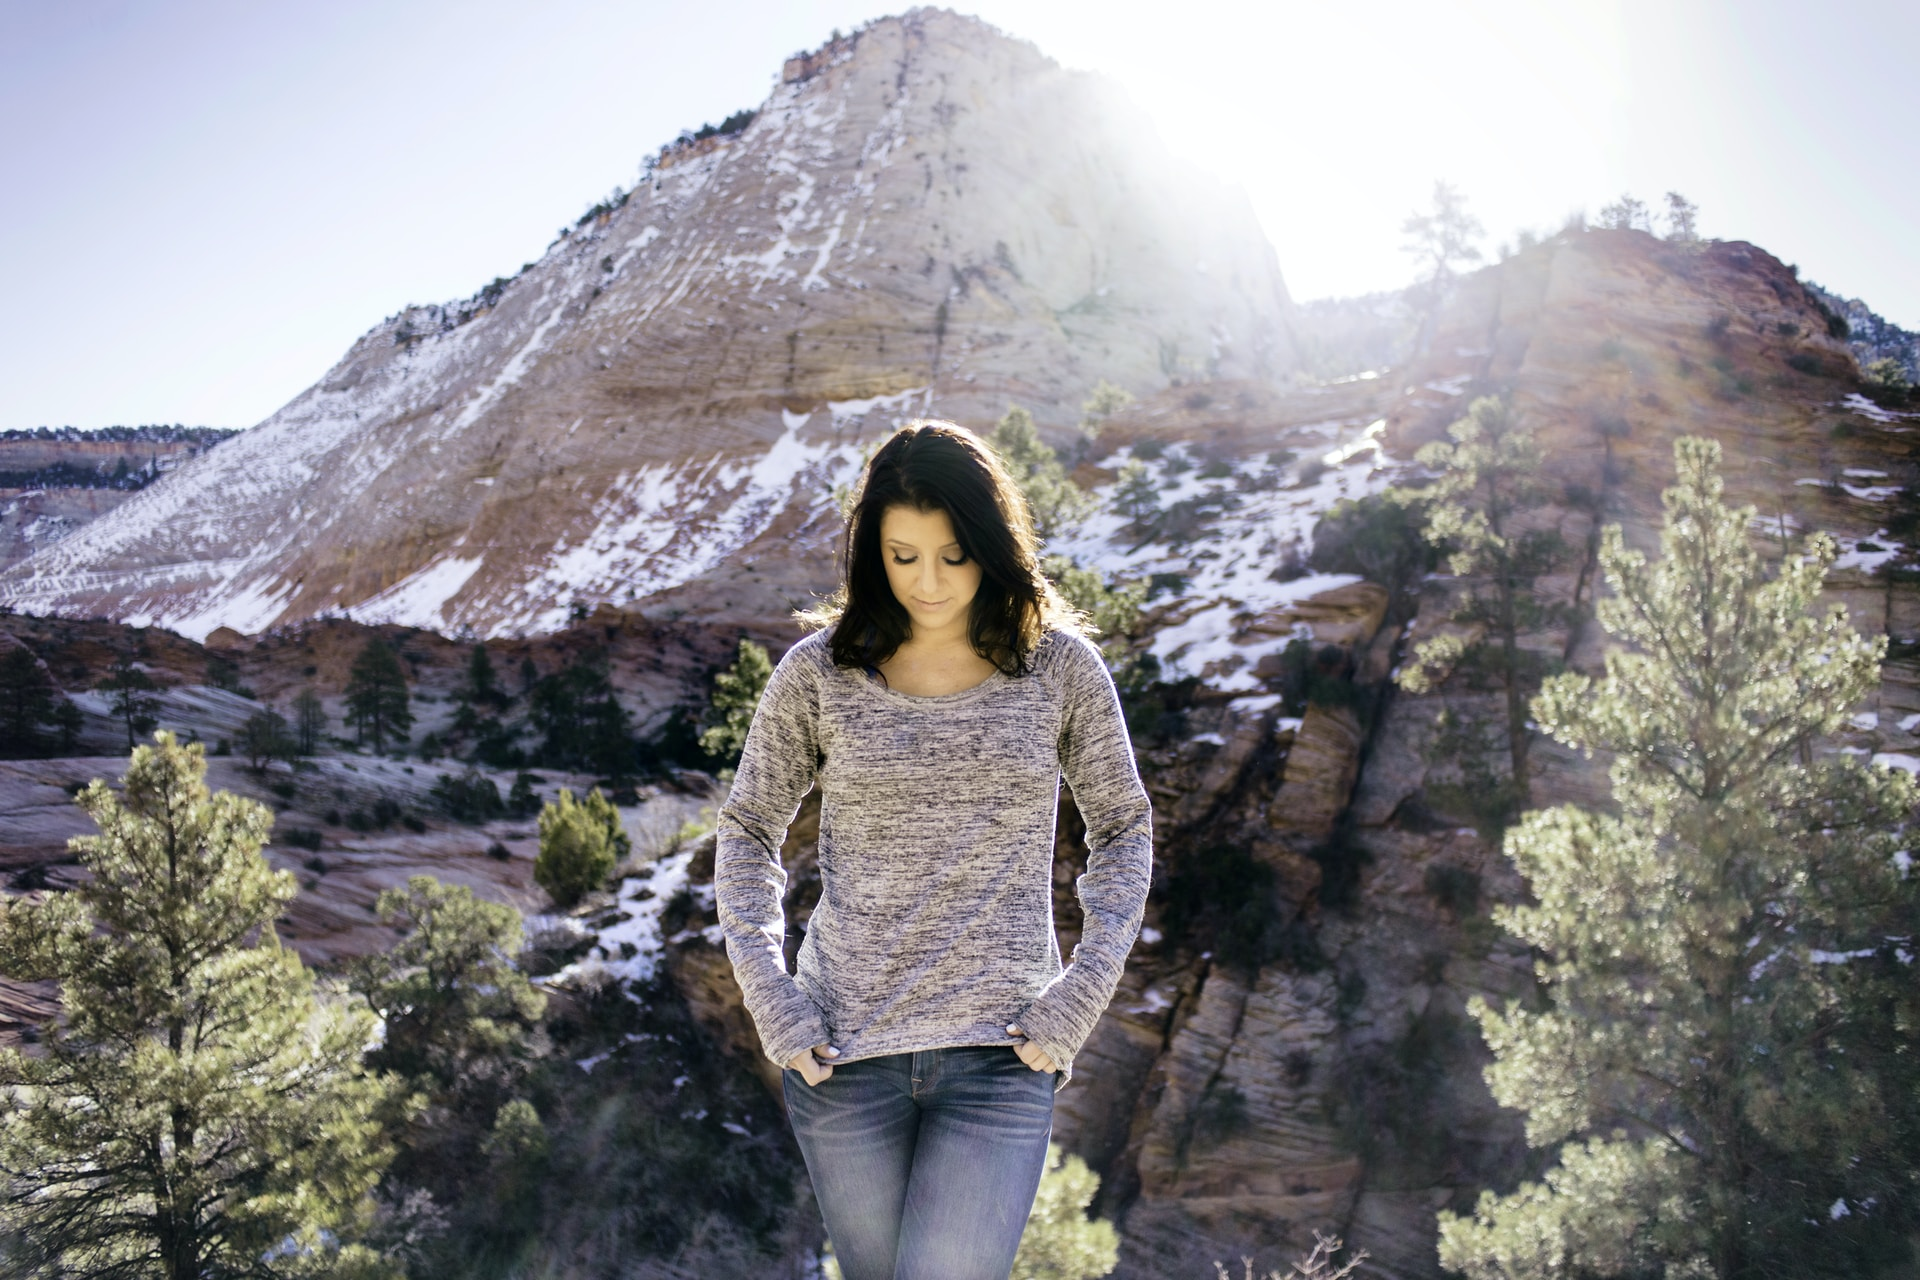 woman standing near tree and alp mountain